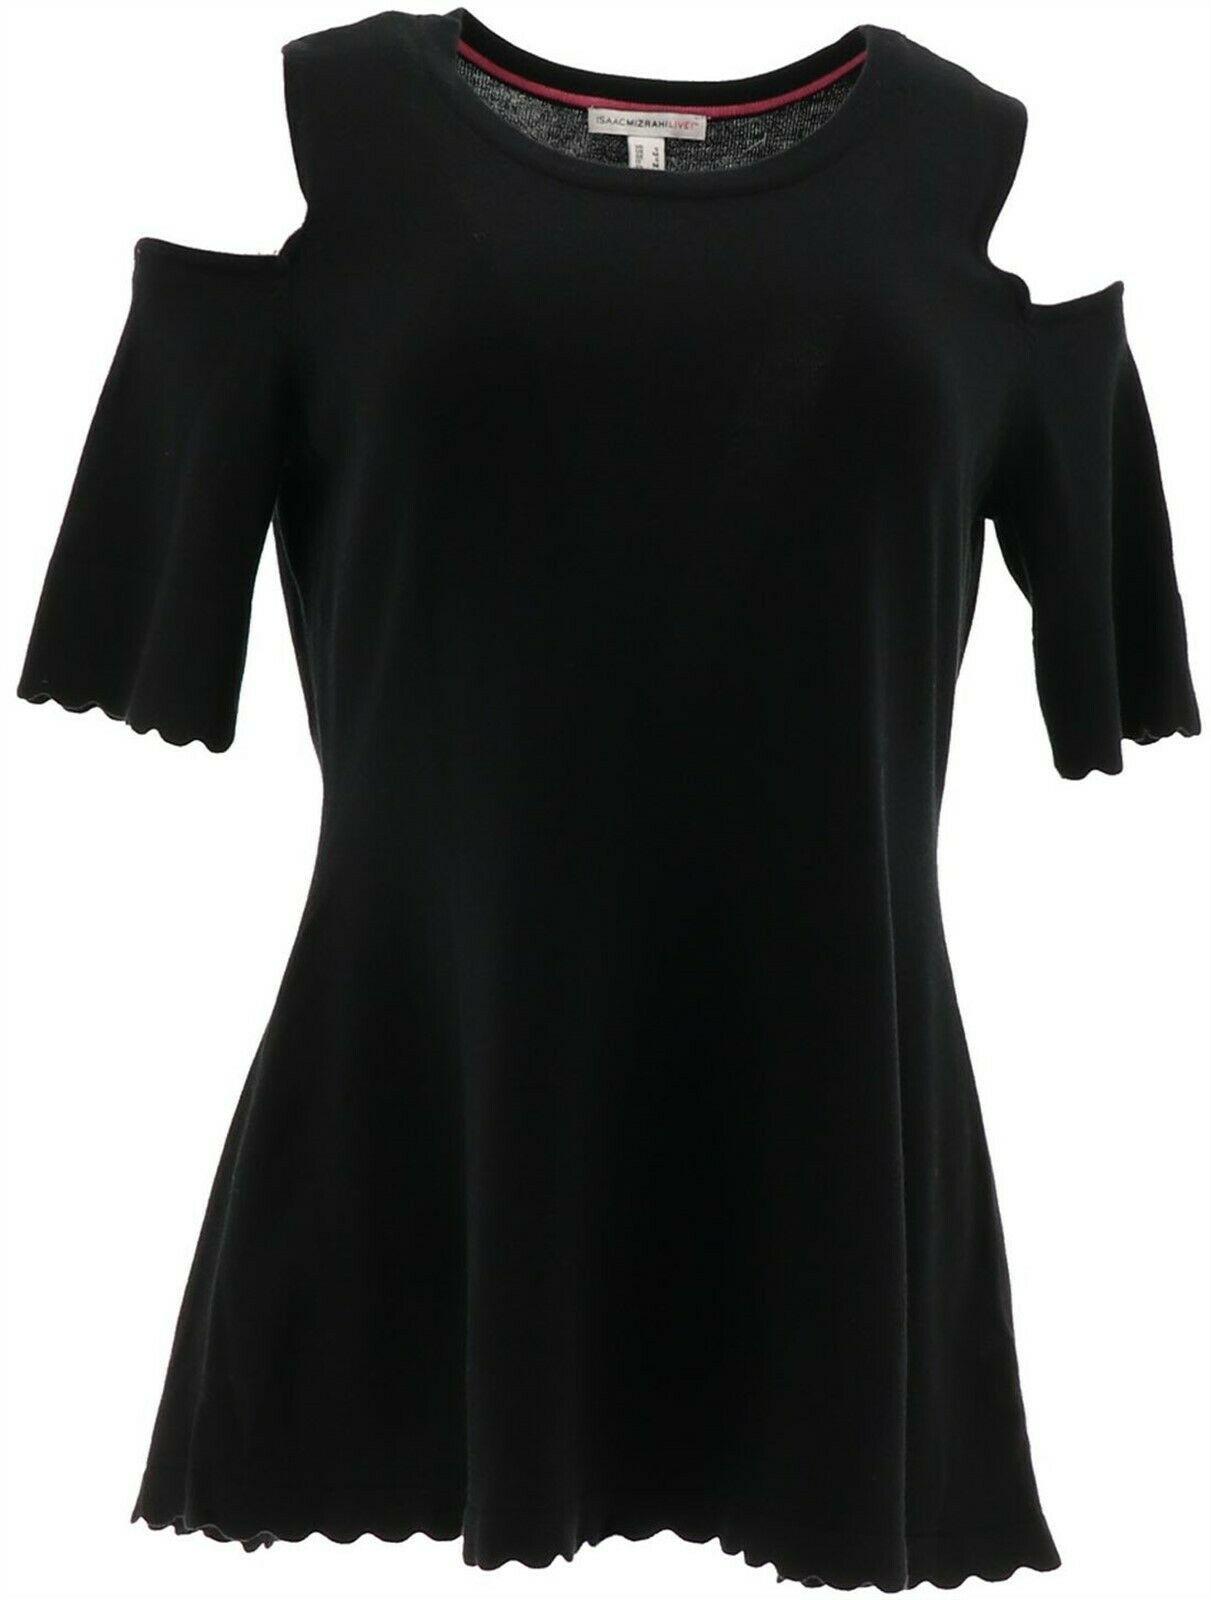 Primary image for Isaac Mizrahi Cold-Shoulder Scallop Peplum Pullover Black XL NEW A306440